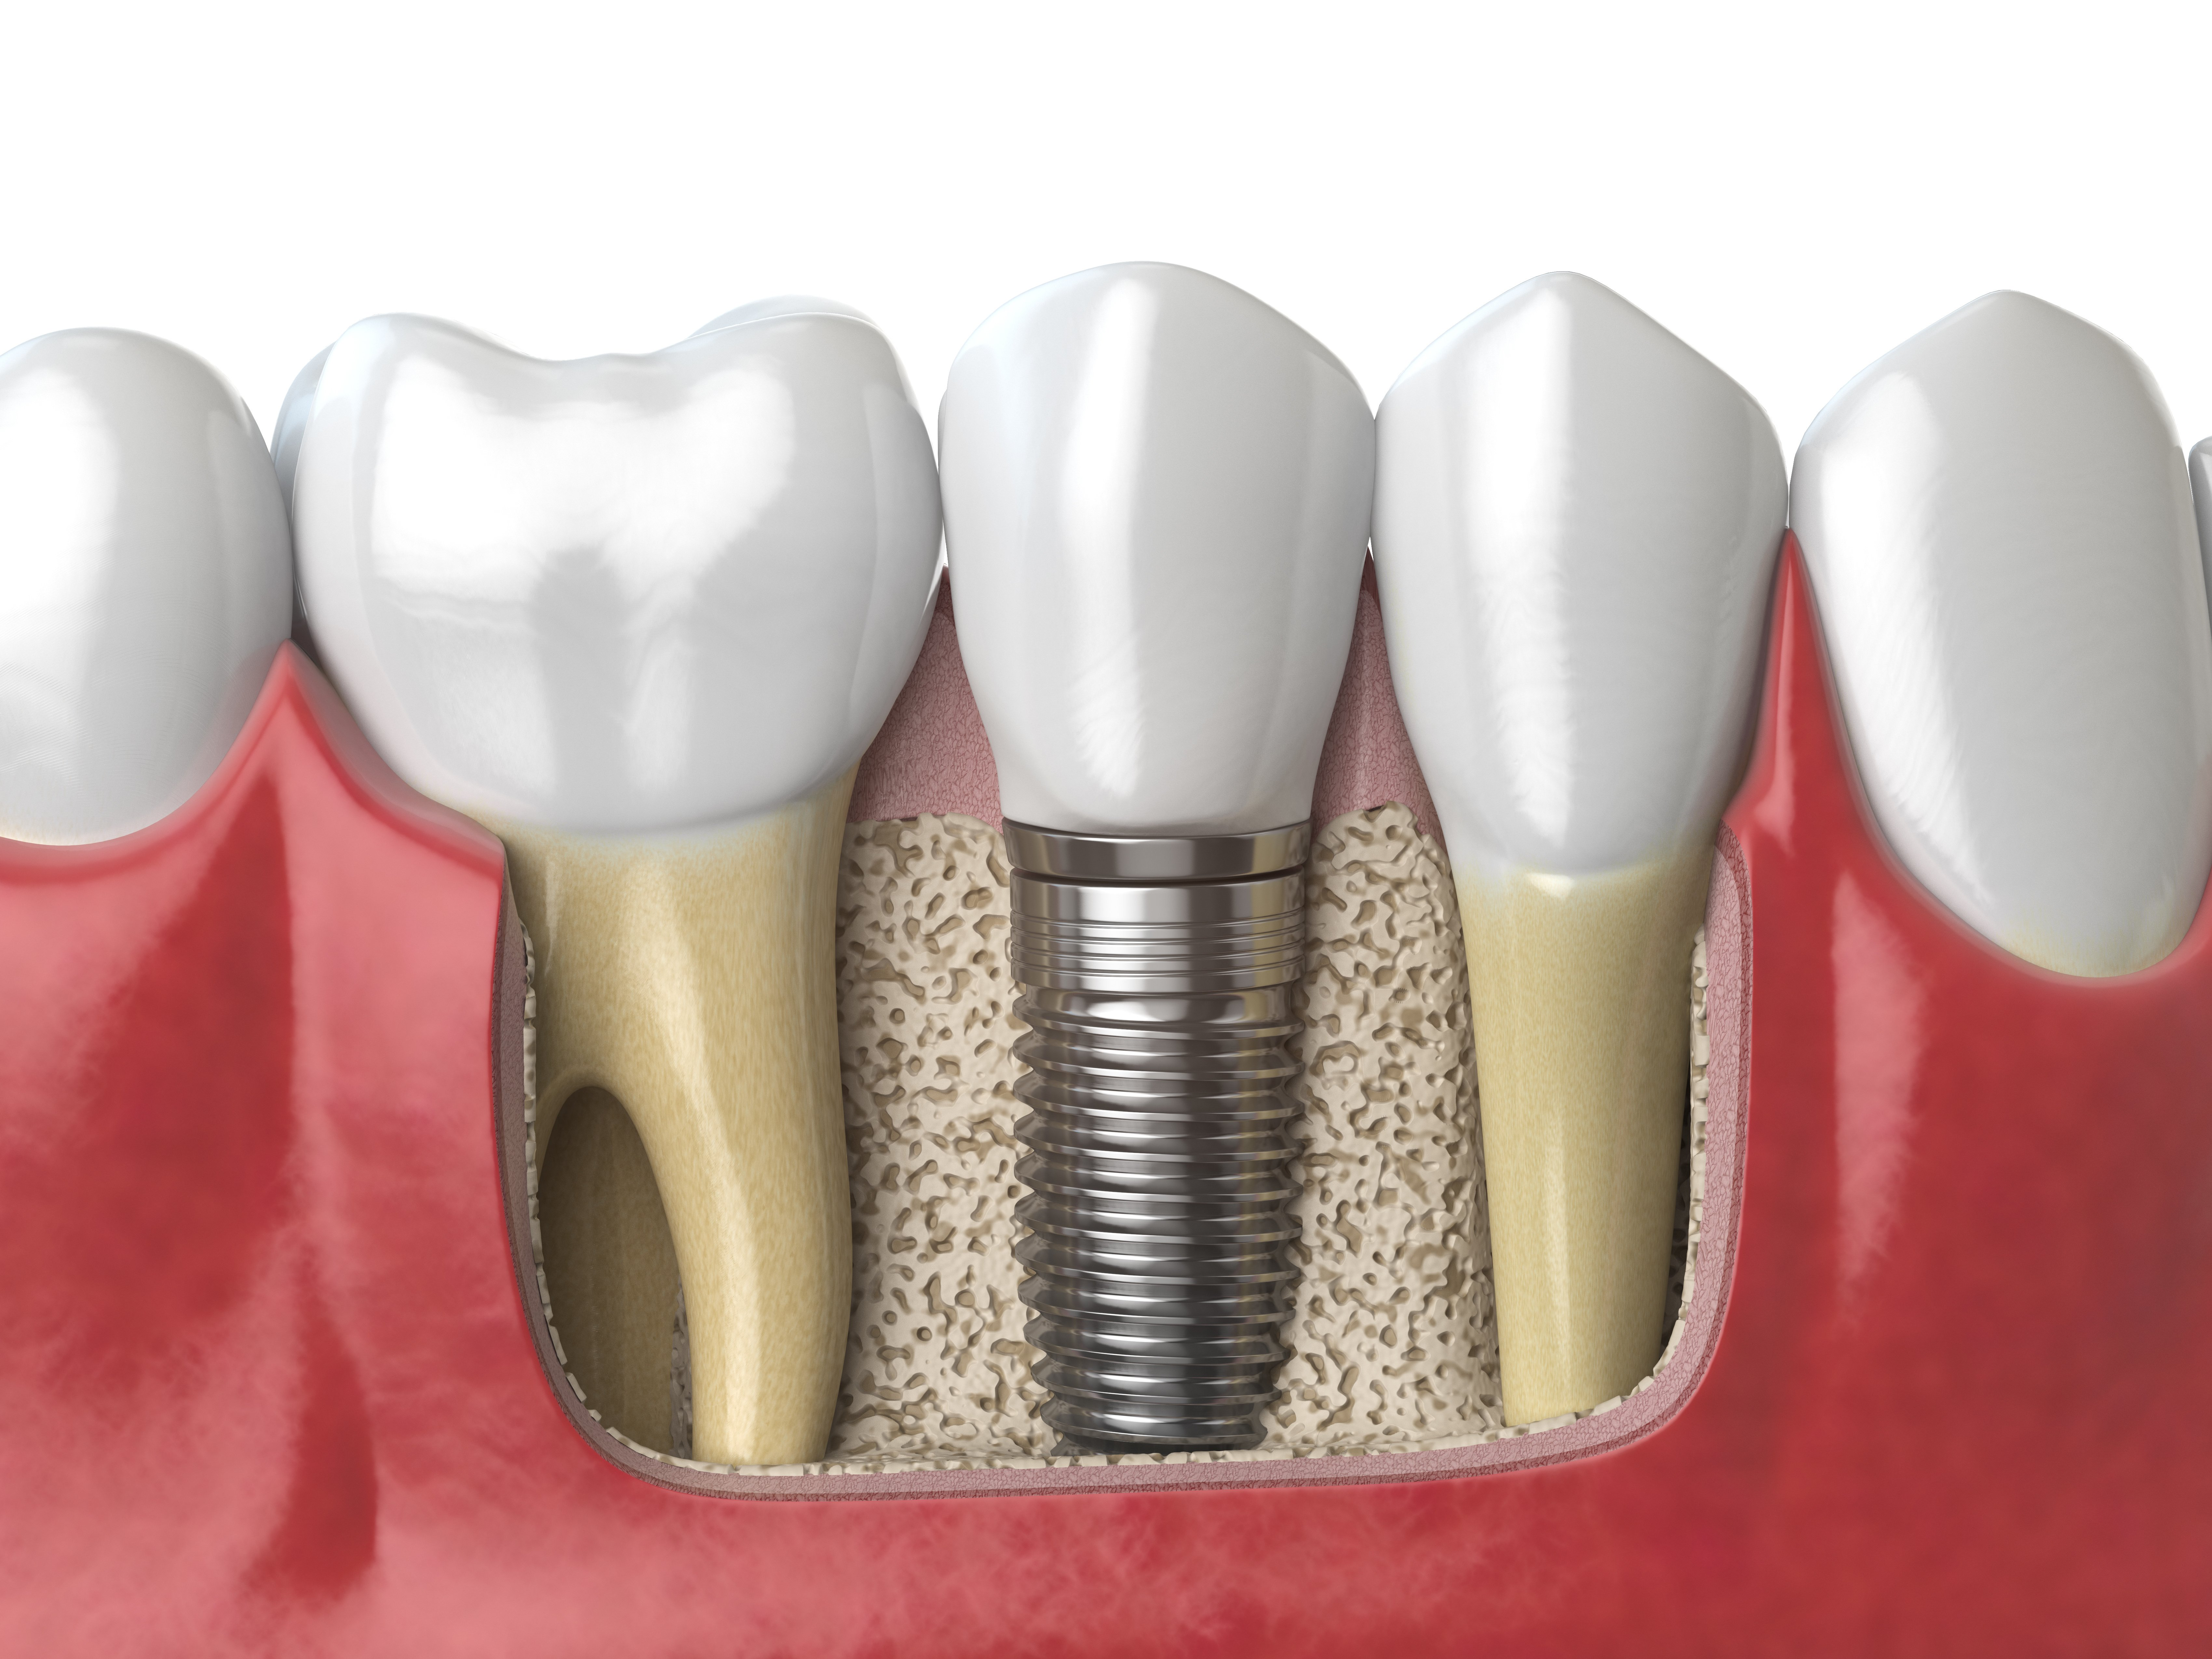 Model of Implant with Teeth Roots